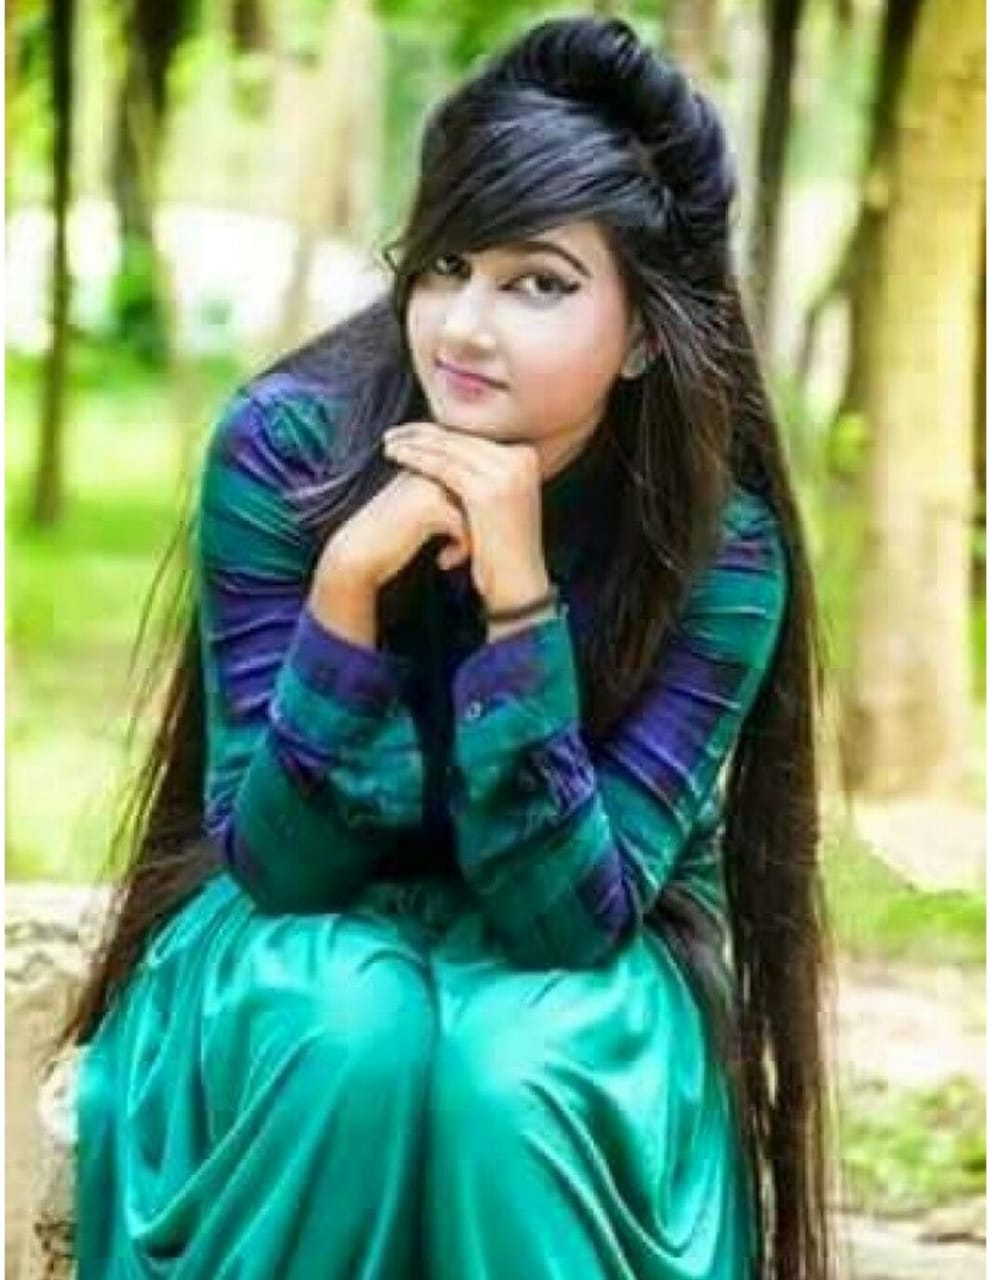 Cute Baby Boy Wallpapers For Facebook Profile Picture Beautiful Pakistani Girls Pics Images Pakistani Girl